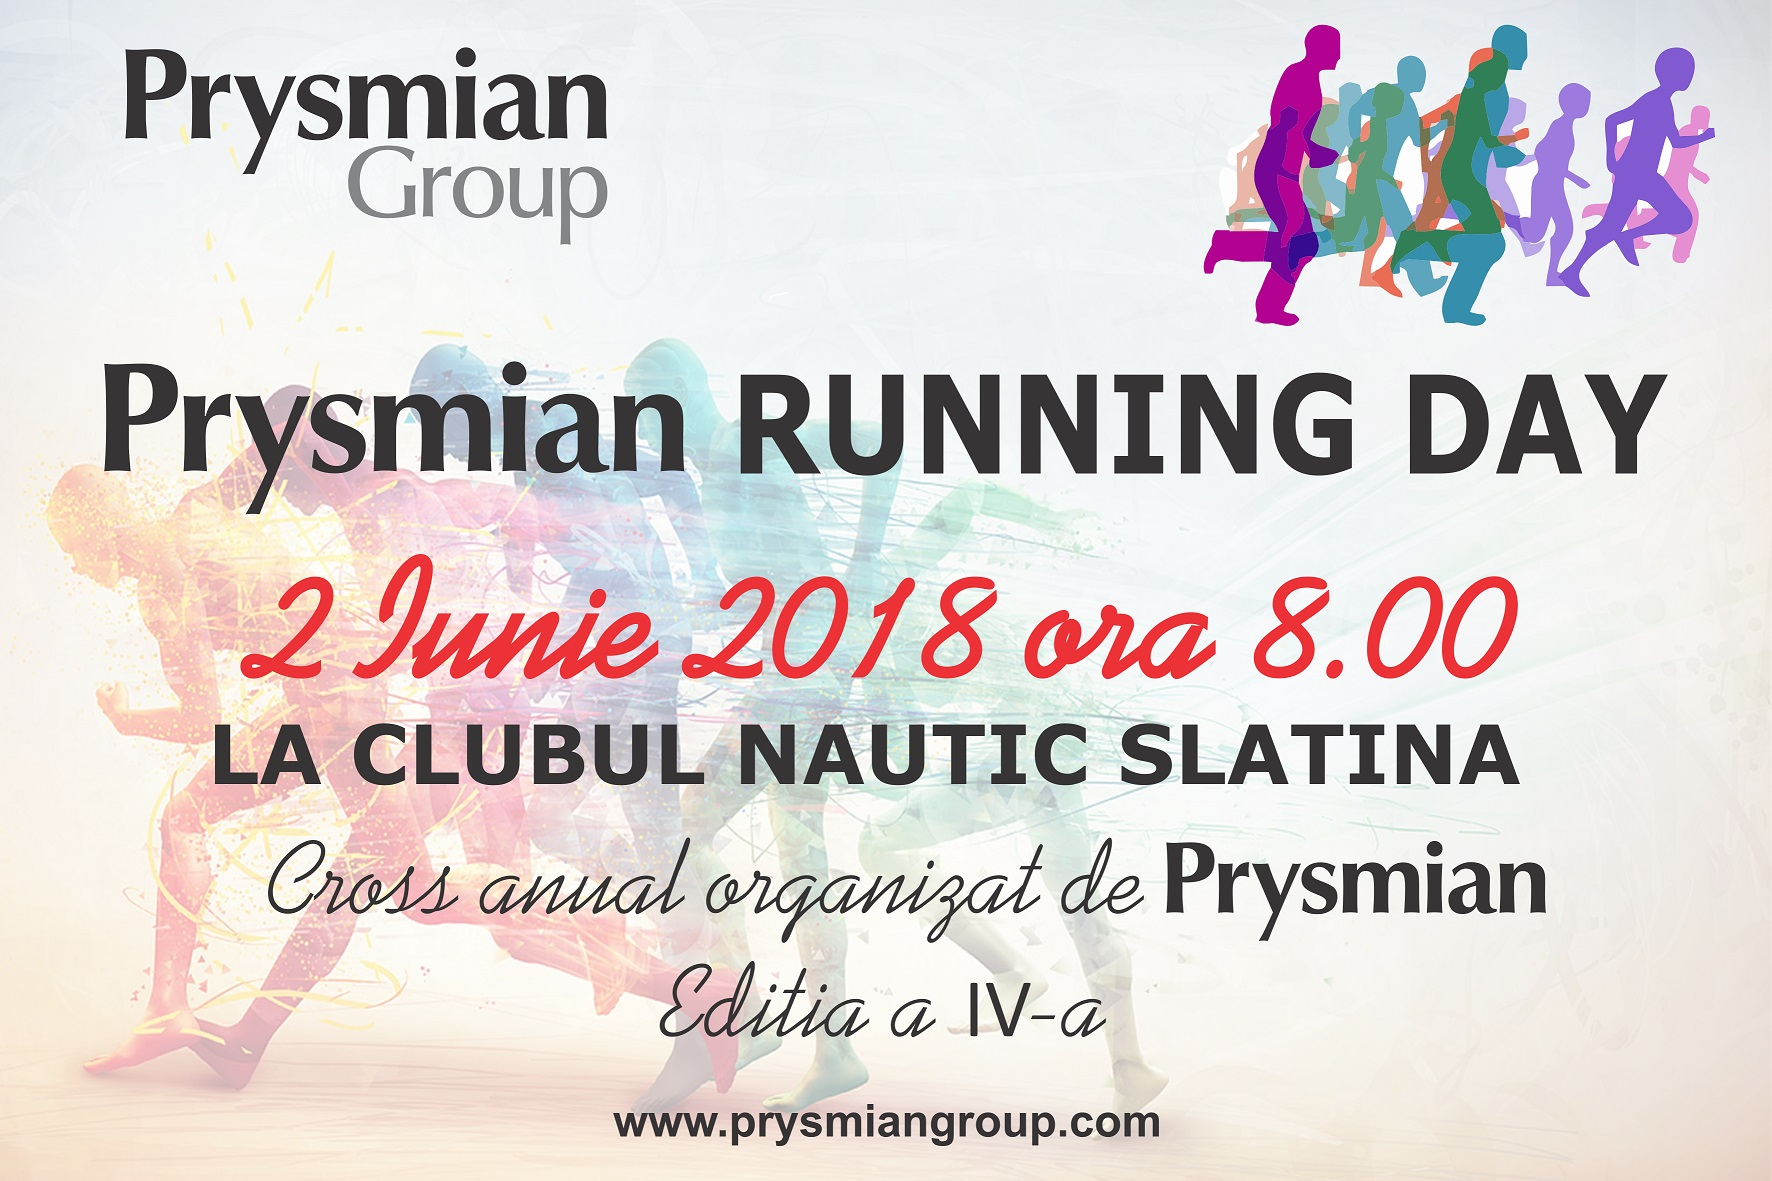 Prysmian Running Day Slatina - 4th edition